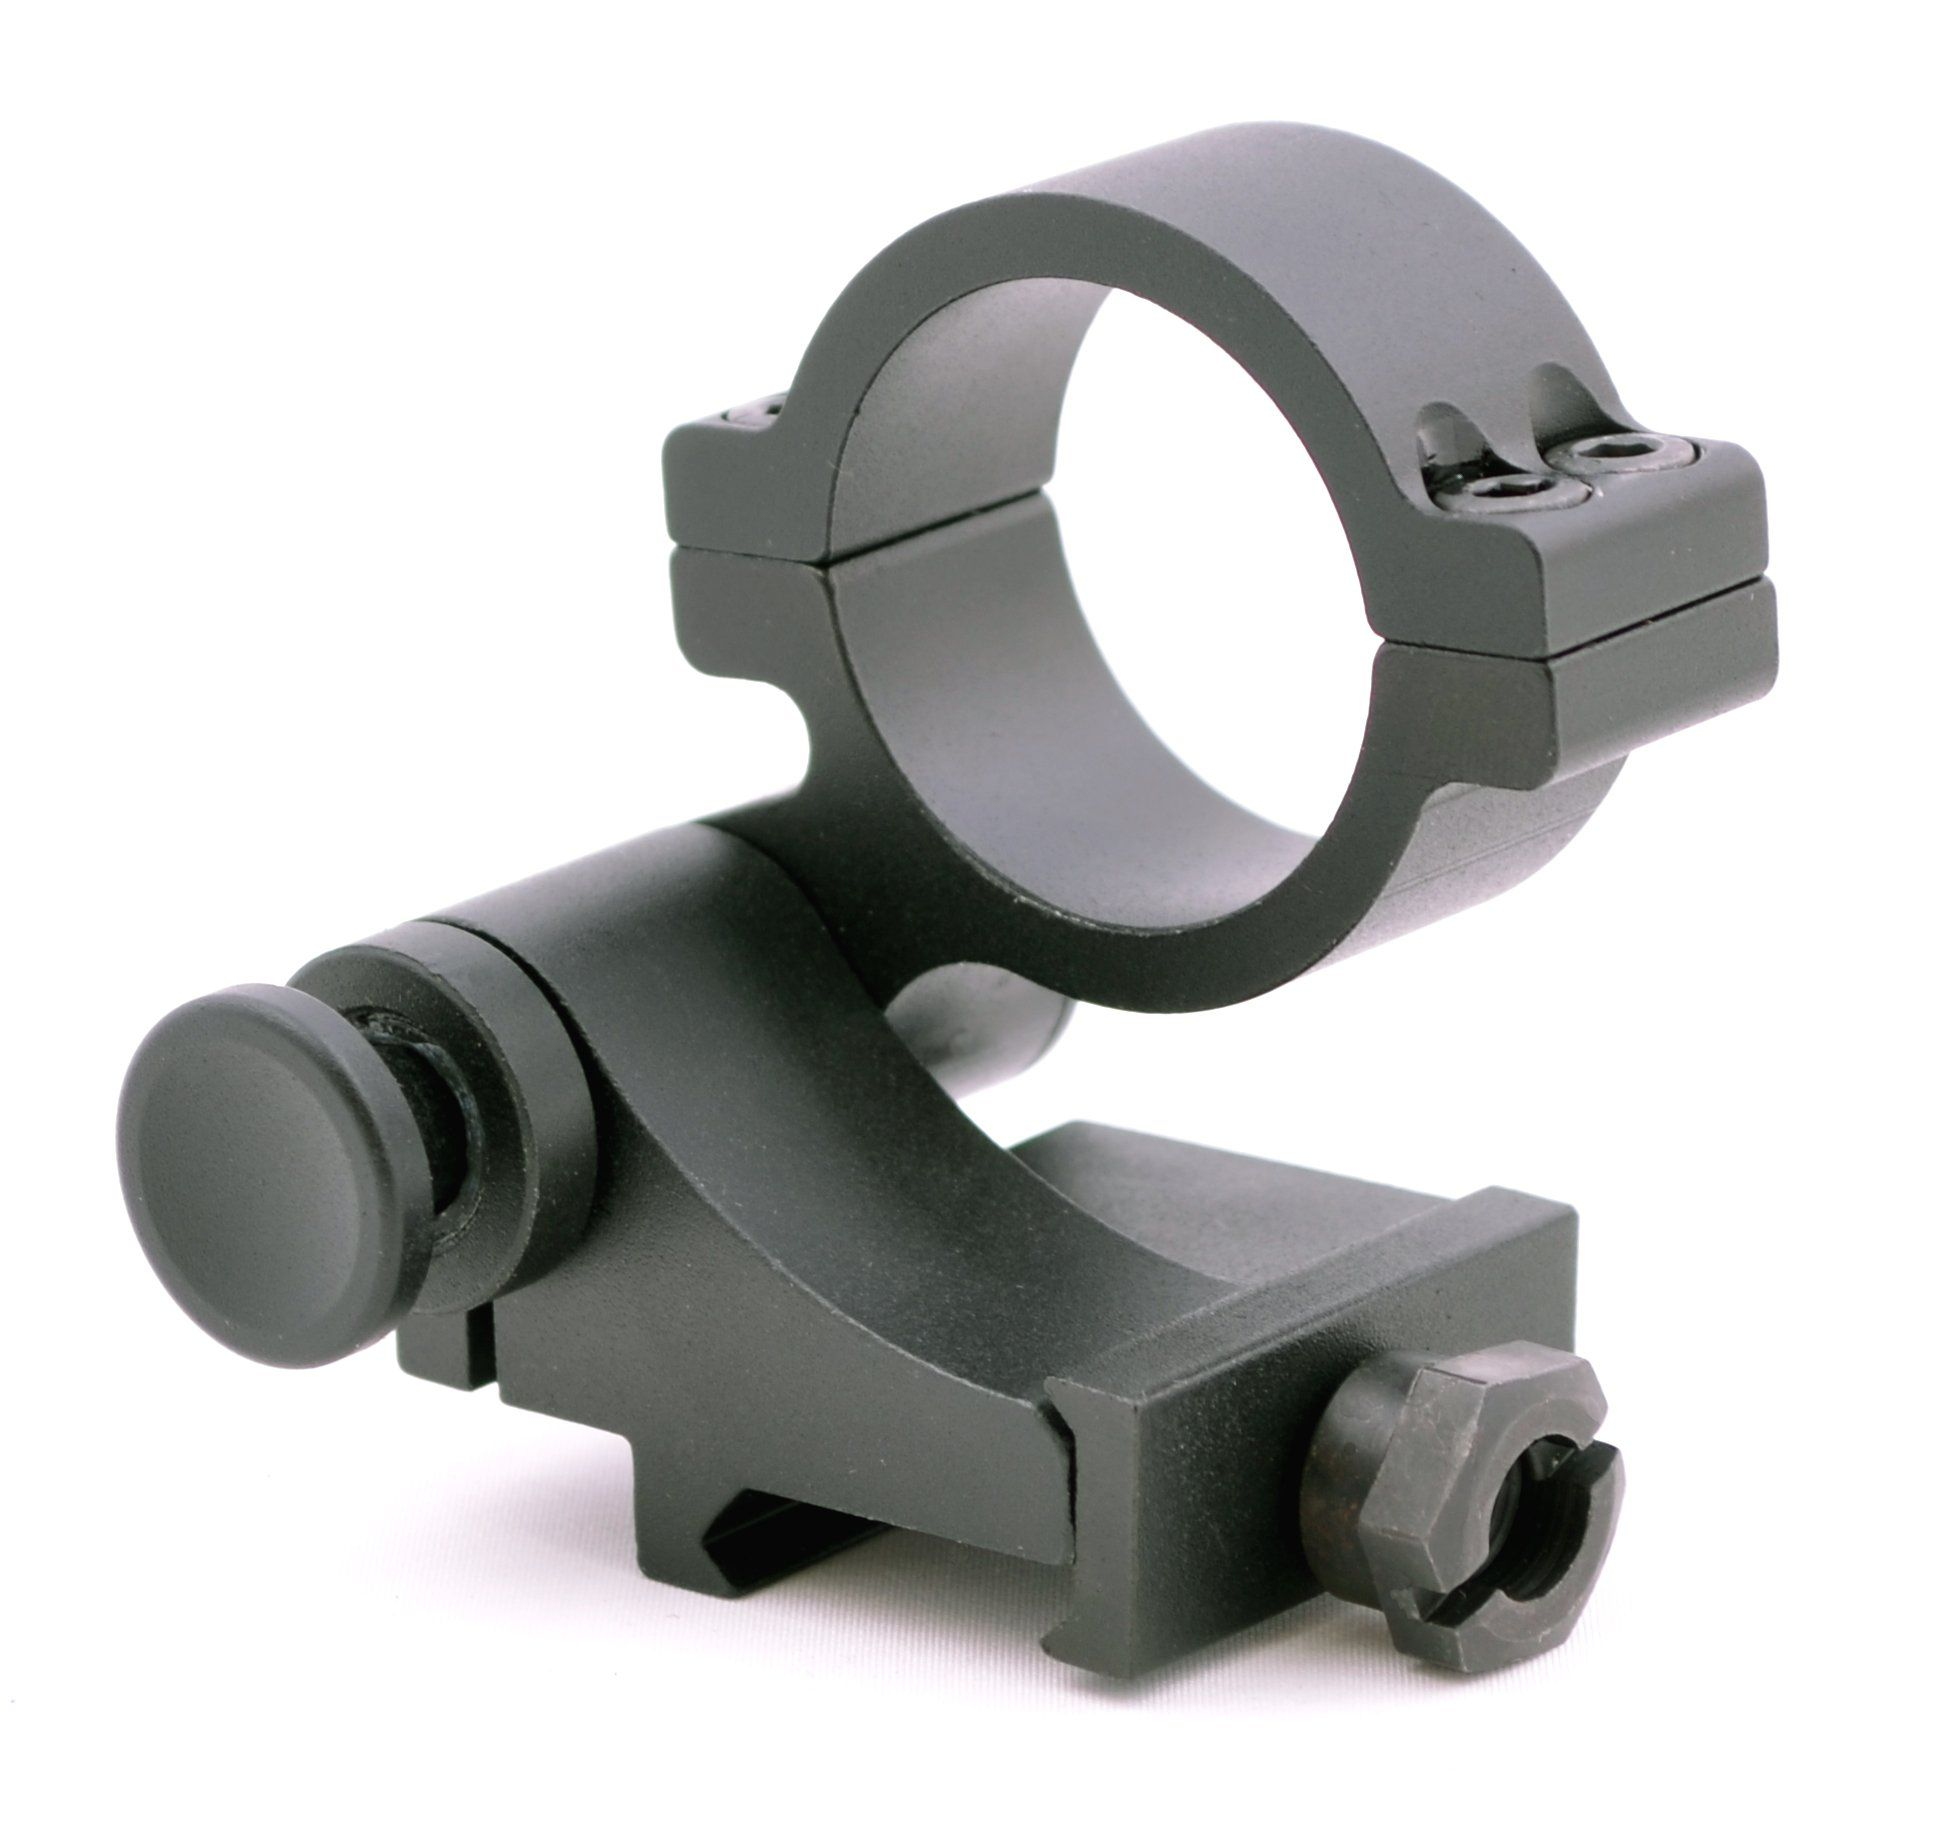 Tms 90 Degree Fts Quick Flip To Side Mount For 30mm Magnifier Scope 36mm Co Witness Mount Height Read More Reviews Of T Magnifier Red Dot Reflex Sight Scope